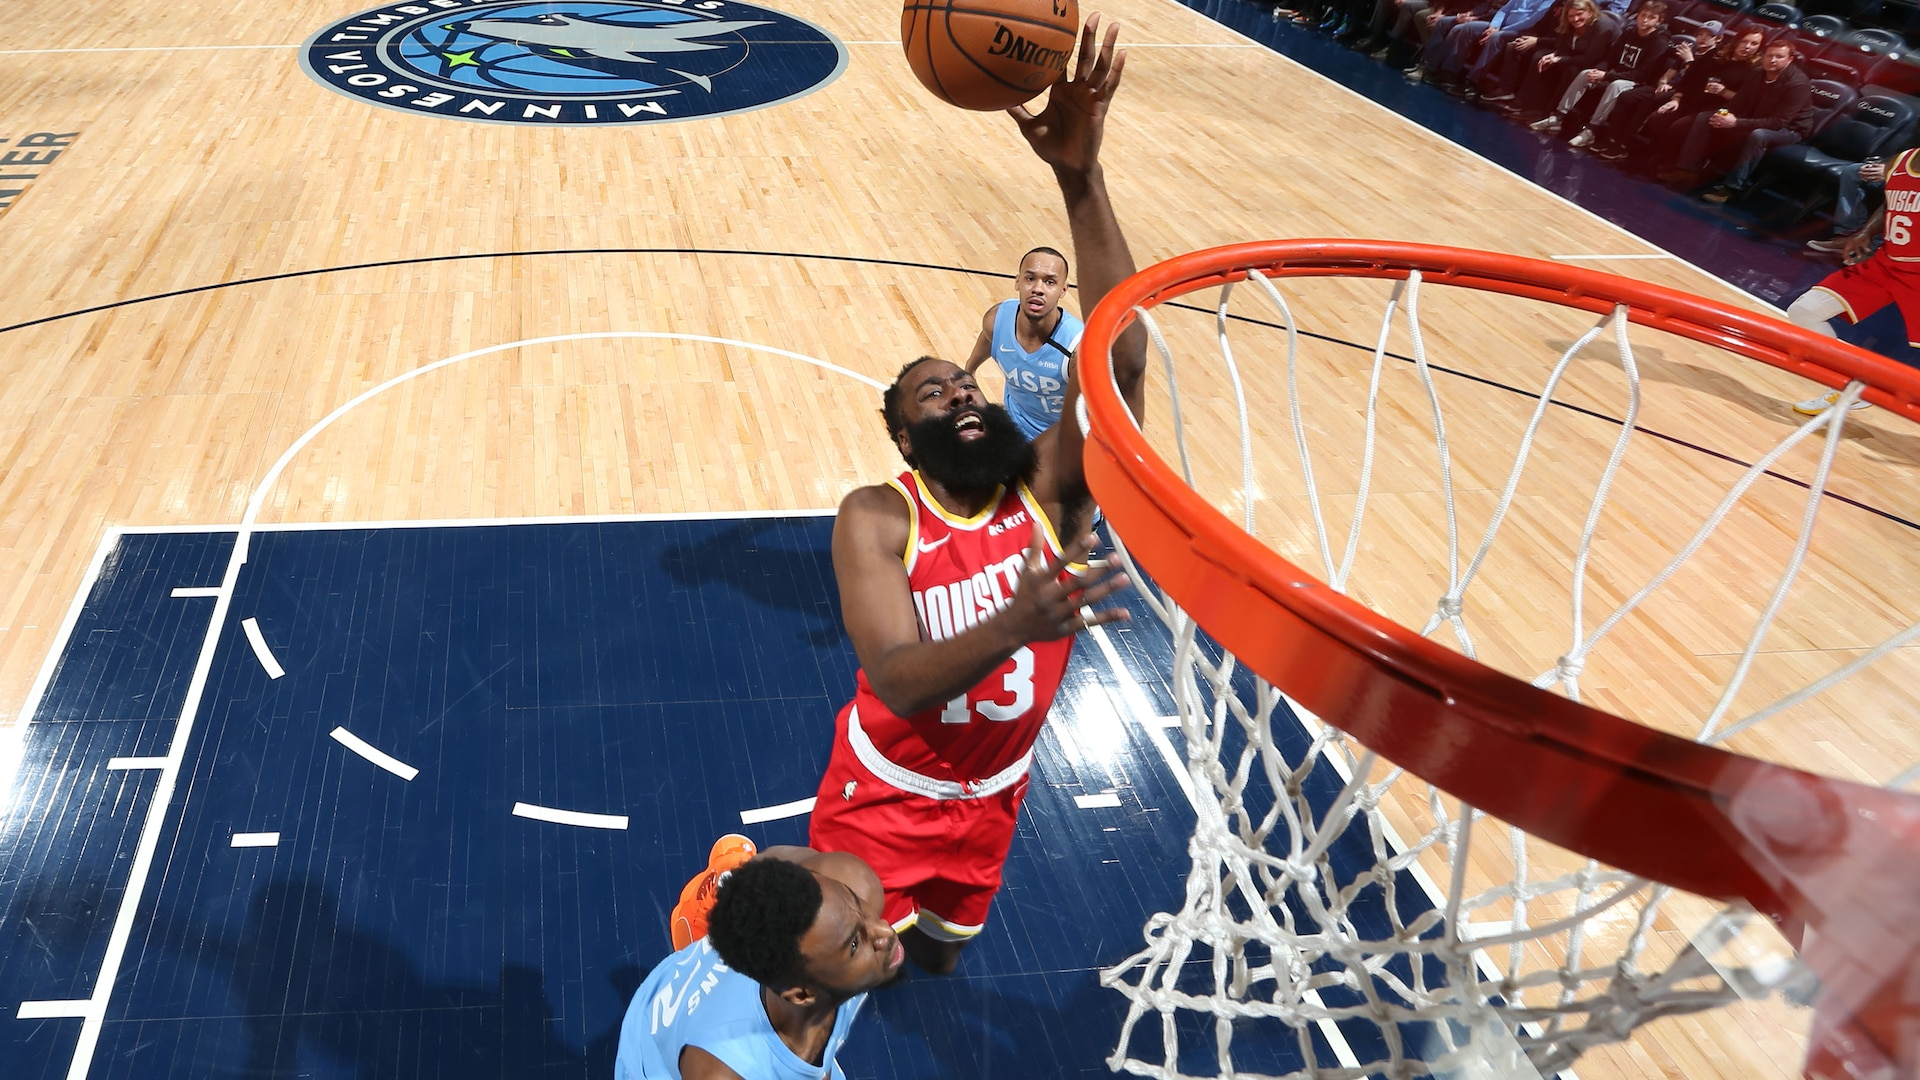 Friday's notebook: James Harden struggles in January